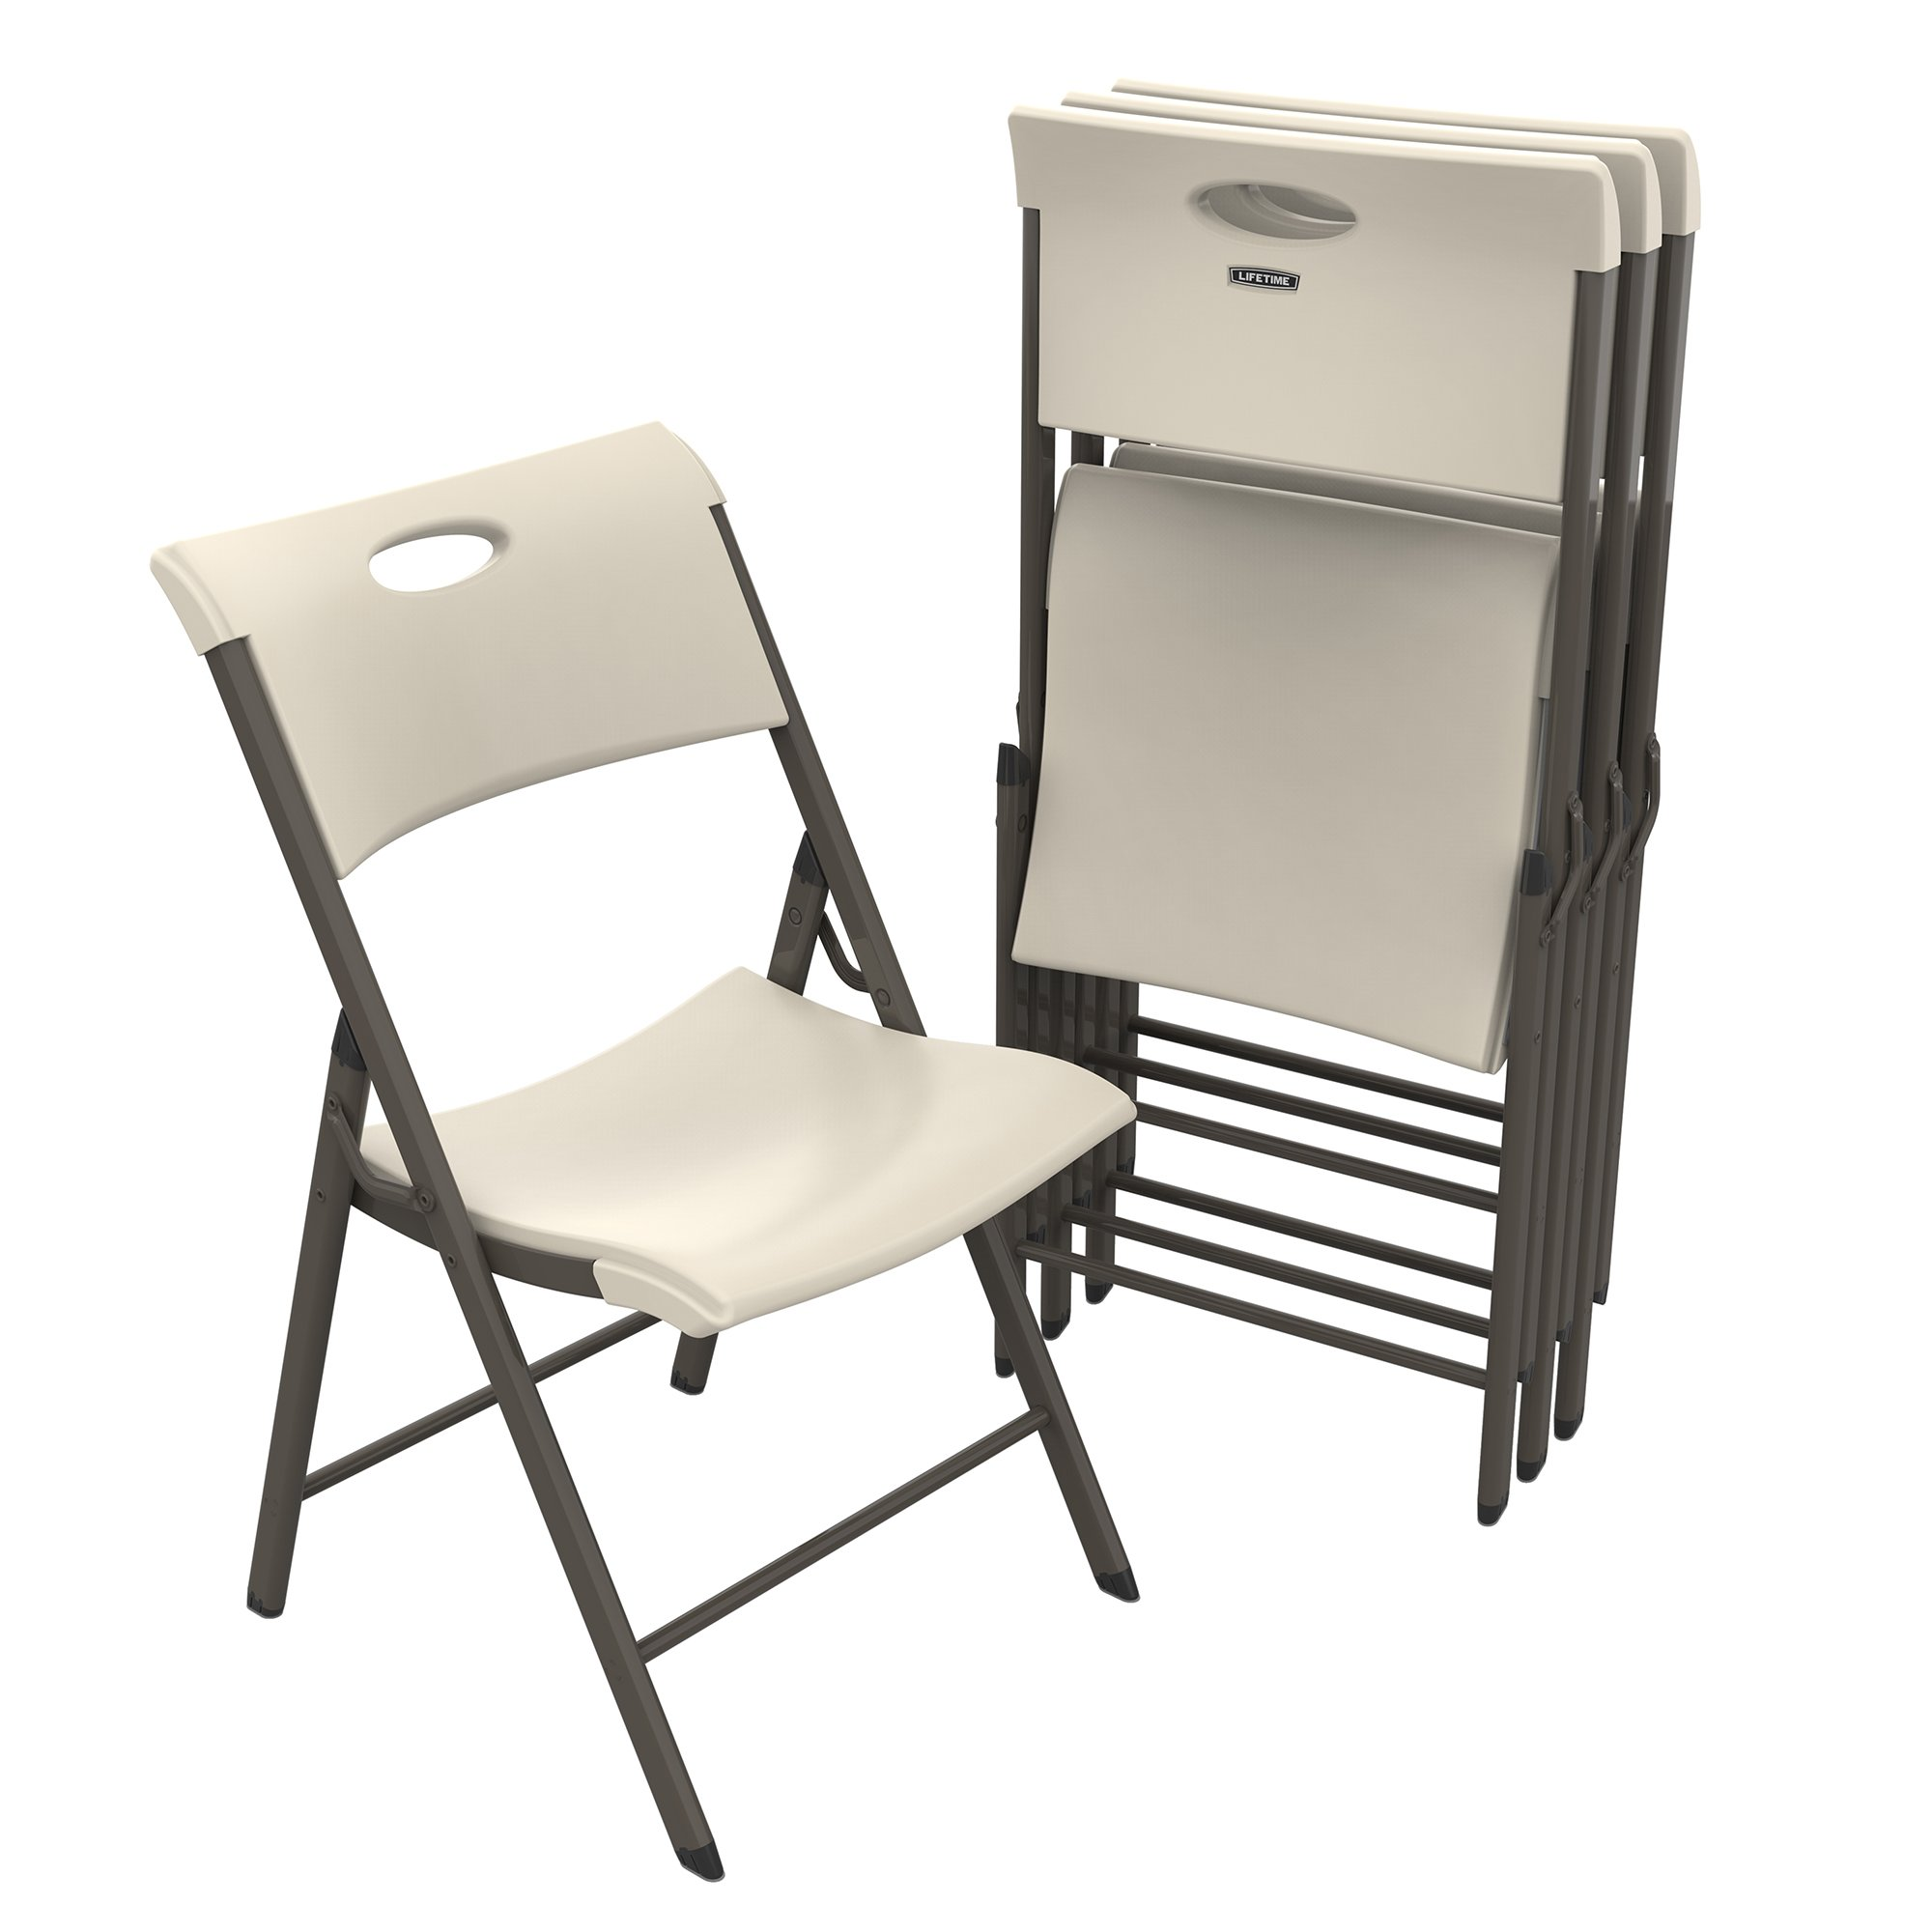 Lifetime 480625 Commercial Folding Chair, Almond